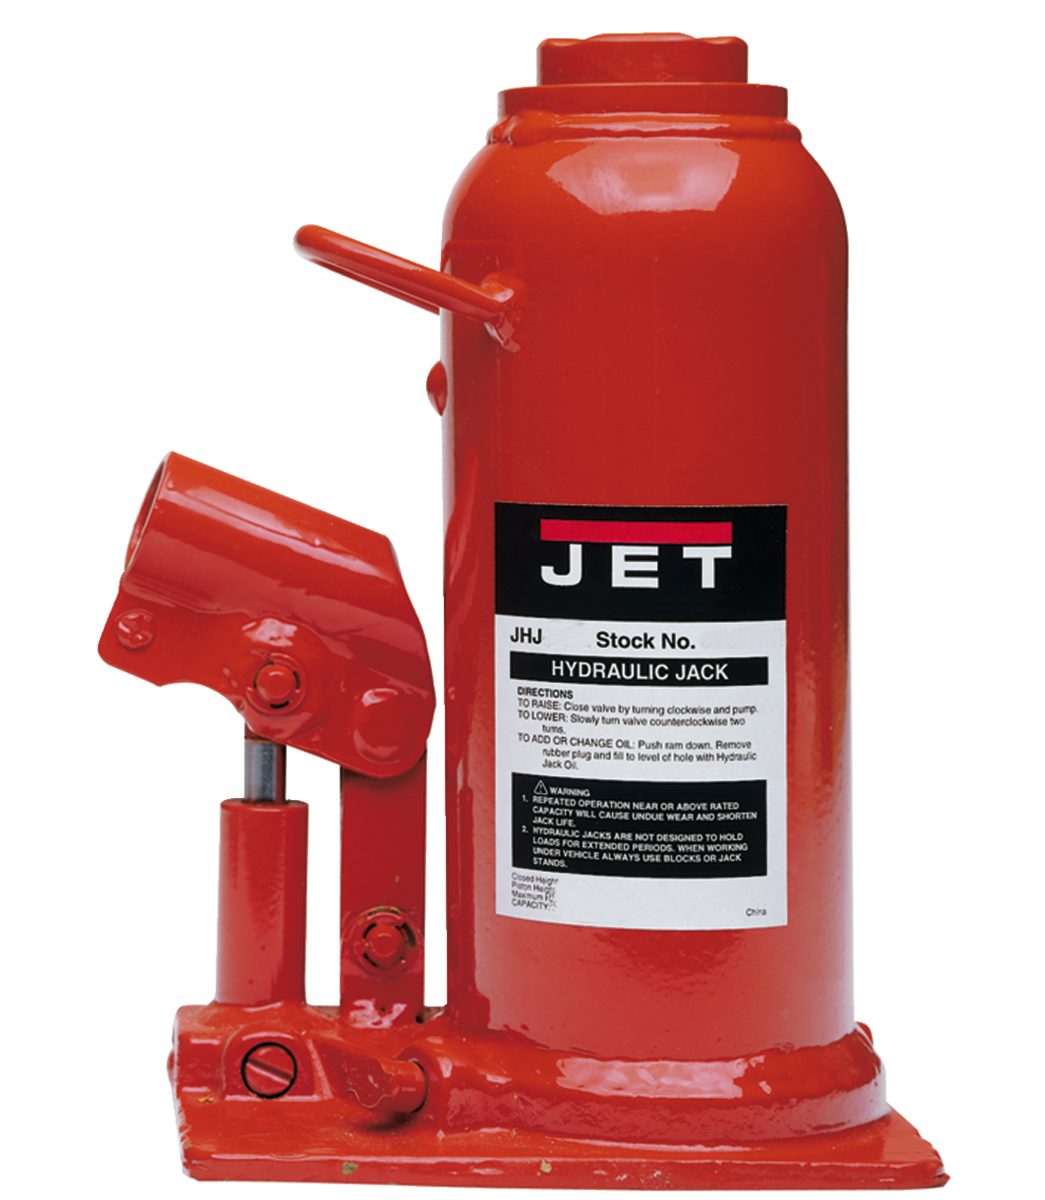 JHJ-100, 100-Ton Hydraulic Bottle Jack